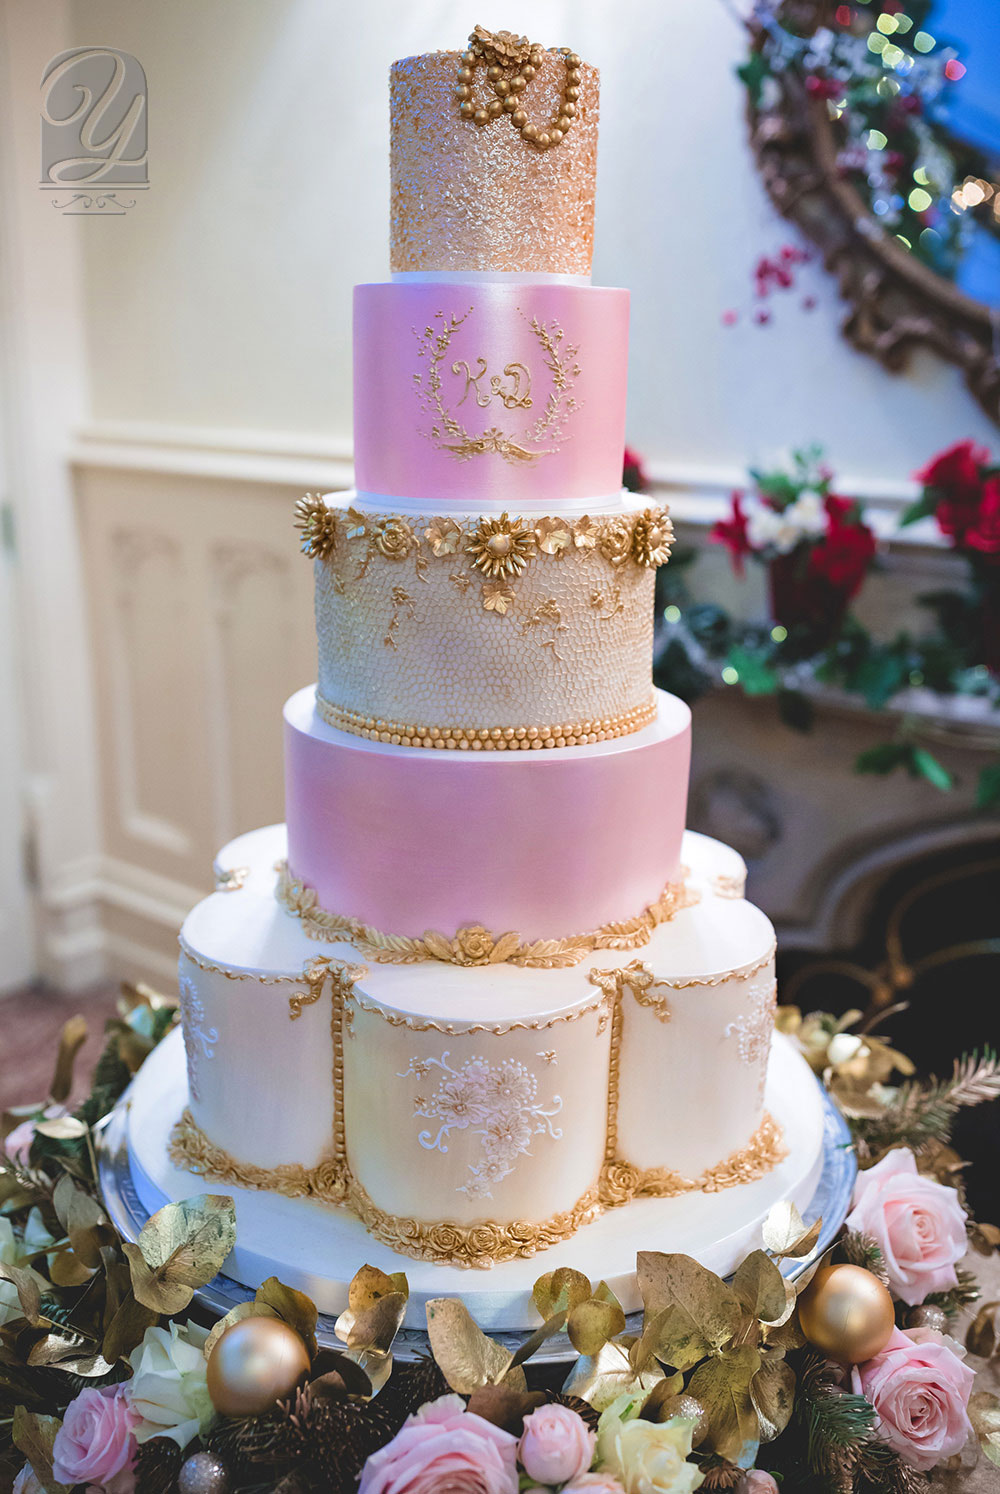 Five tier golden luxury wedding cake with gilded crest of the couple's initials, broches and beading. Delicate lacework and hand-piped royal iced flowers with ornate rose-gold sequin top cake from Unique Cakes by Yevnig